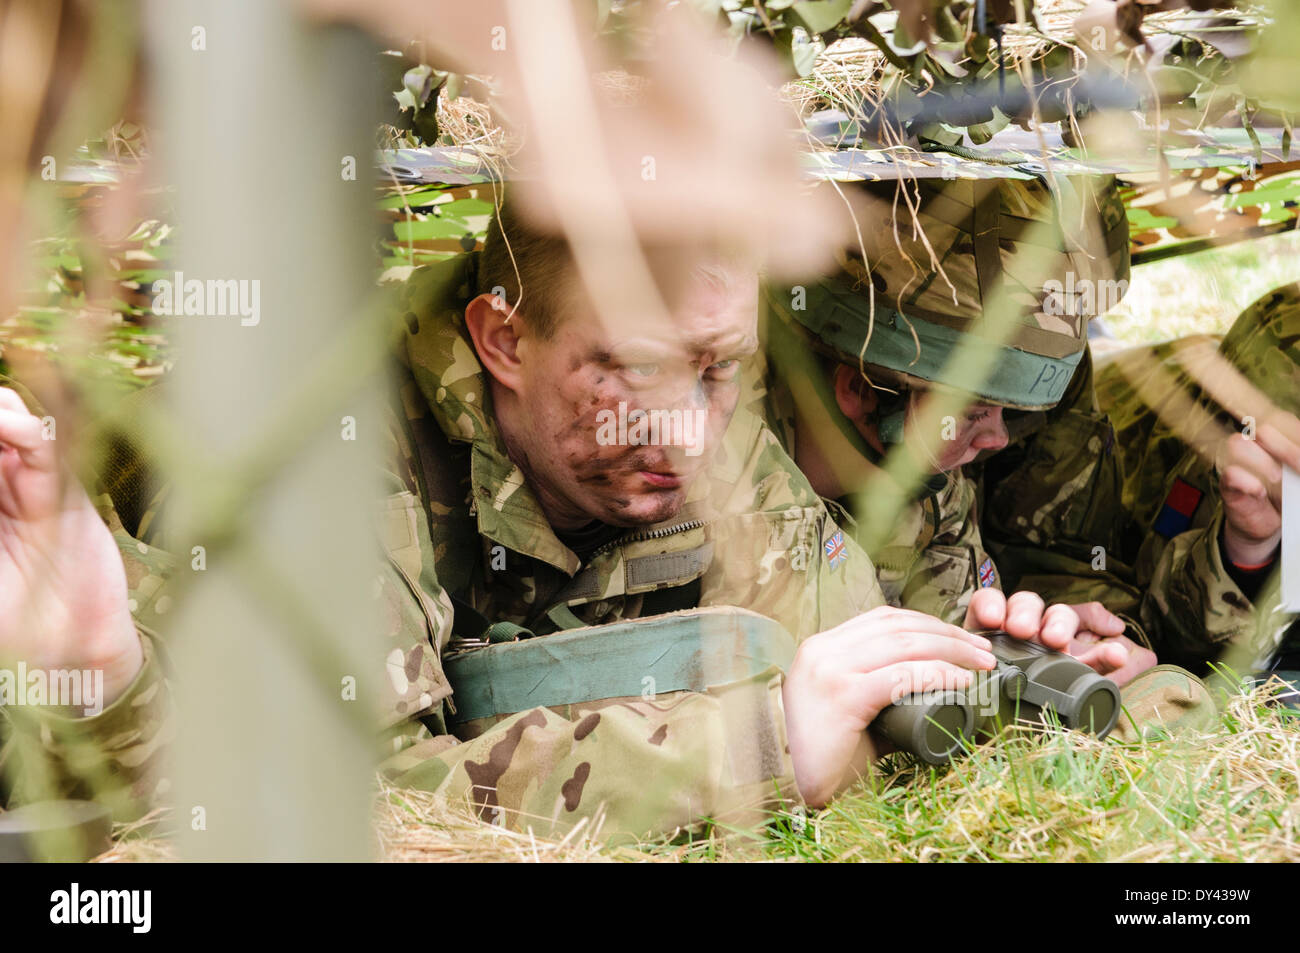 Four soldiers hide underneath camouflage netting in a forward observation post - Stock Image